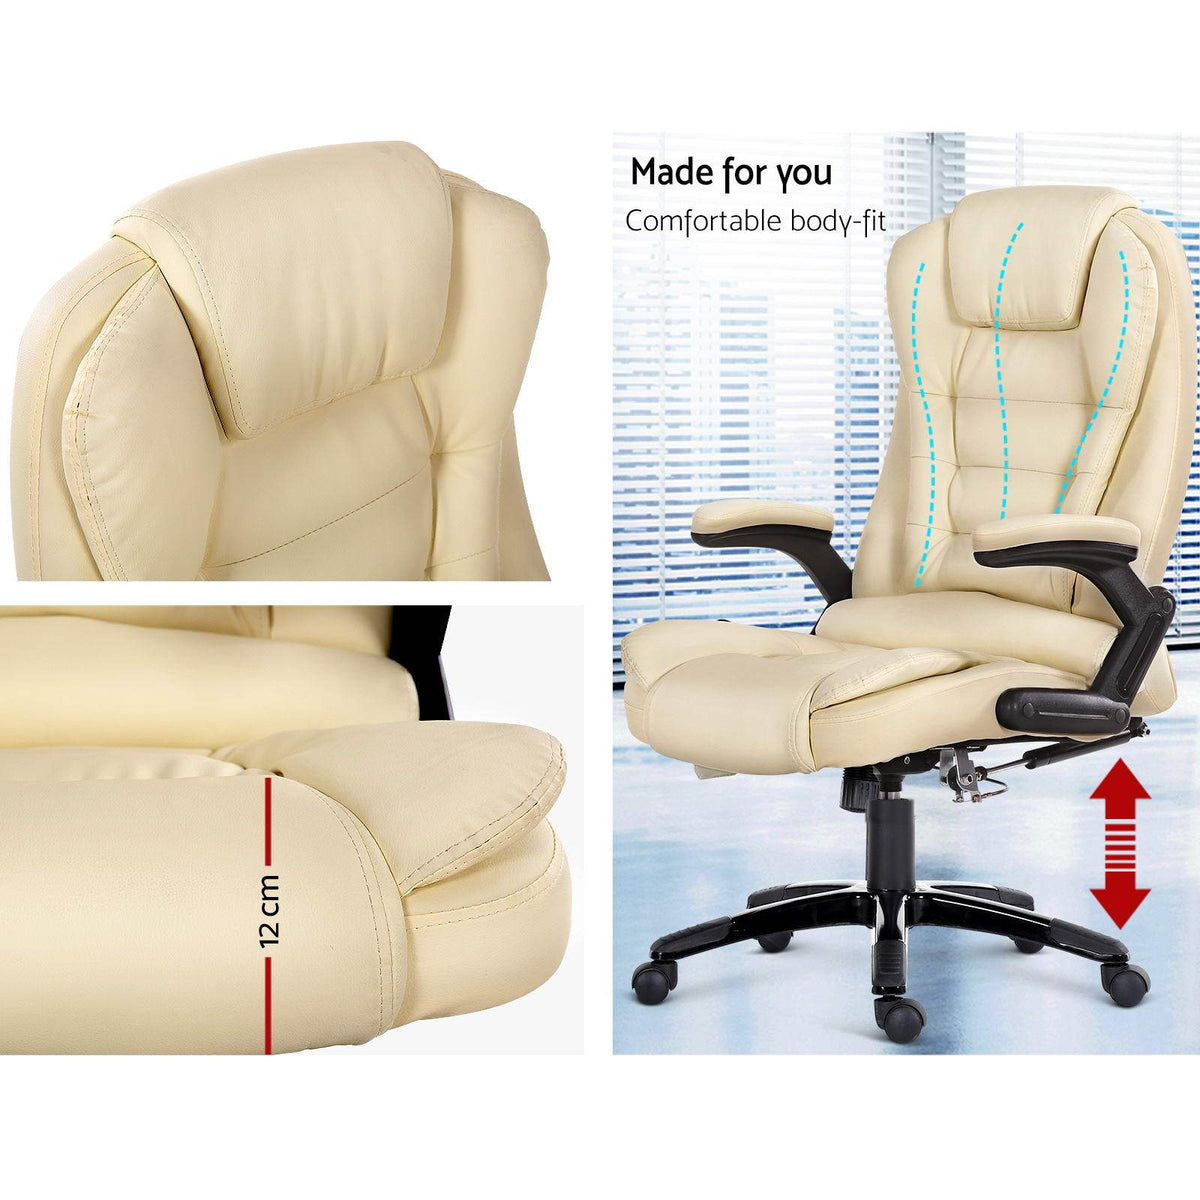 8 Point PU Leather Reclining Massage Chair - Beige - Evopia